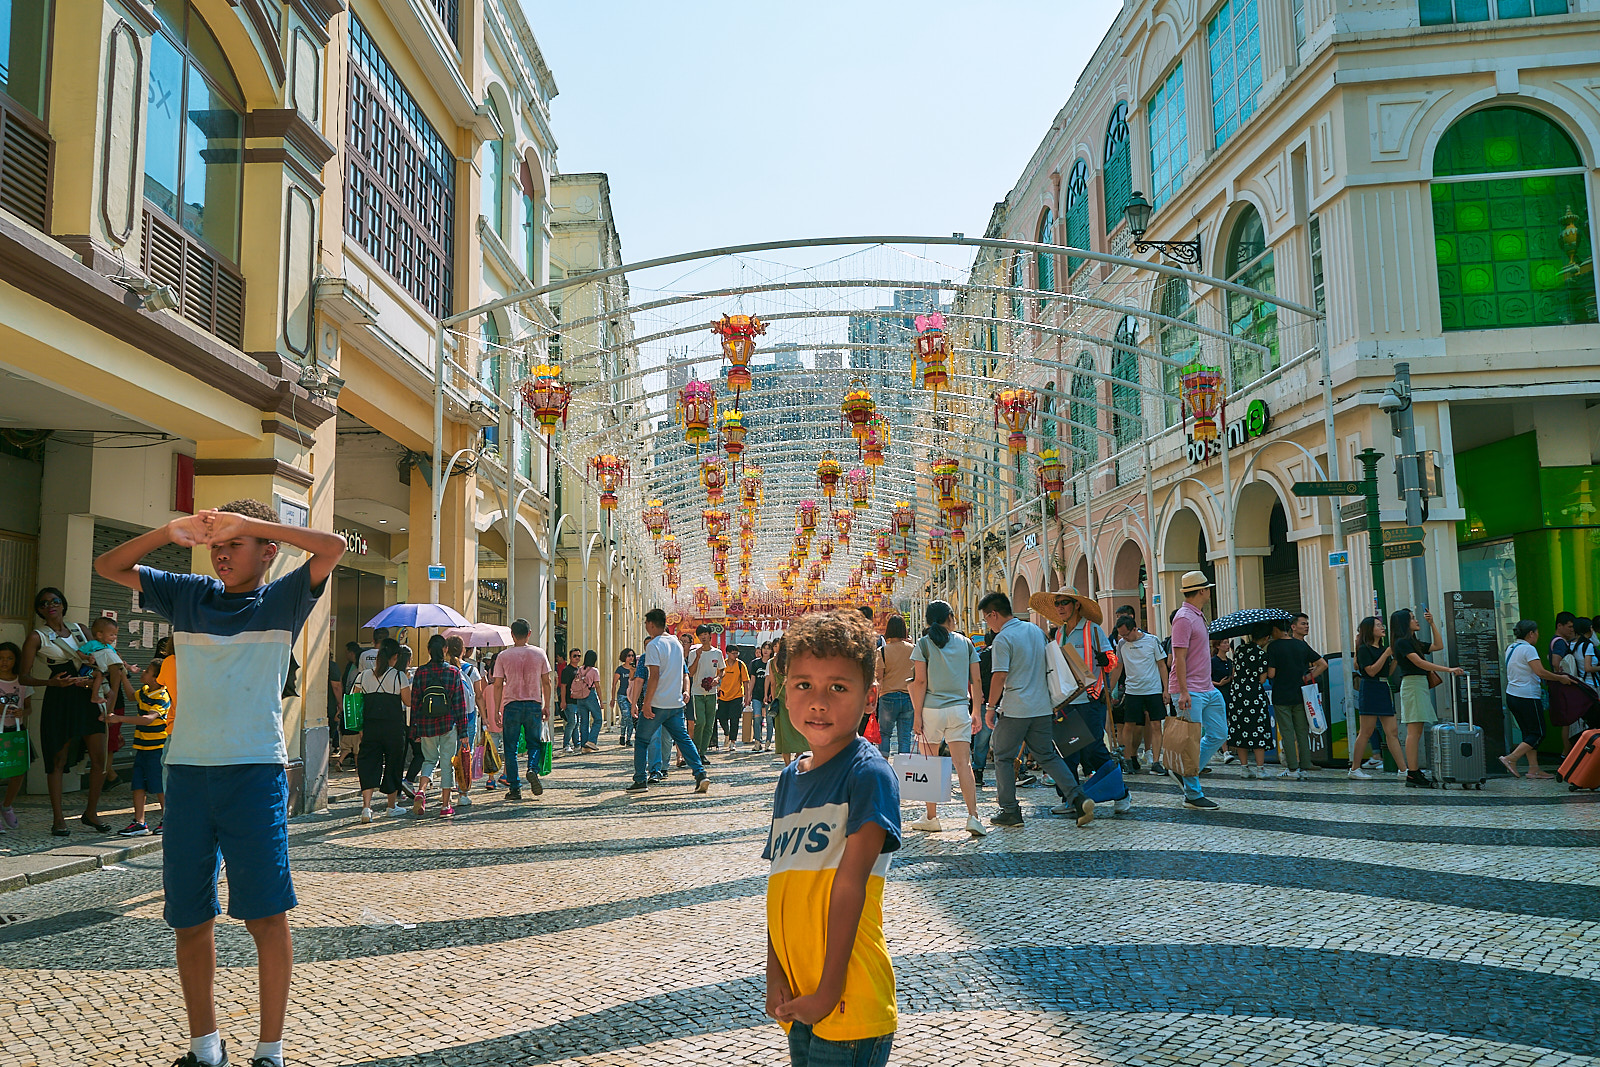 Romantic City Center of Macau